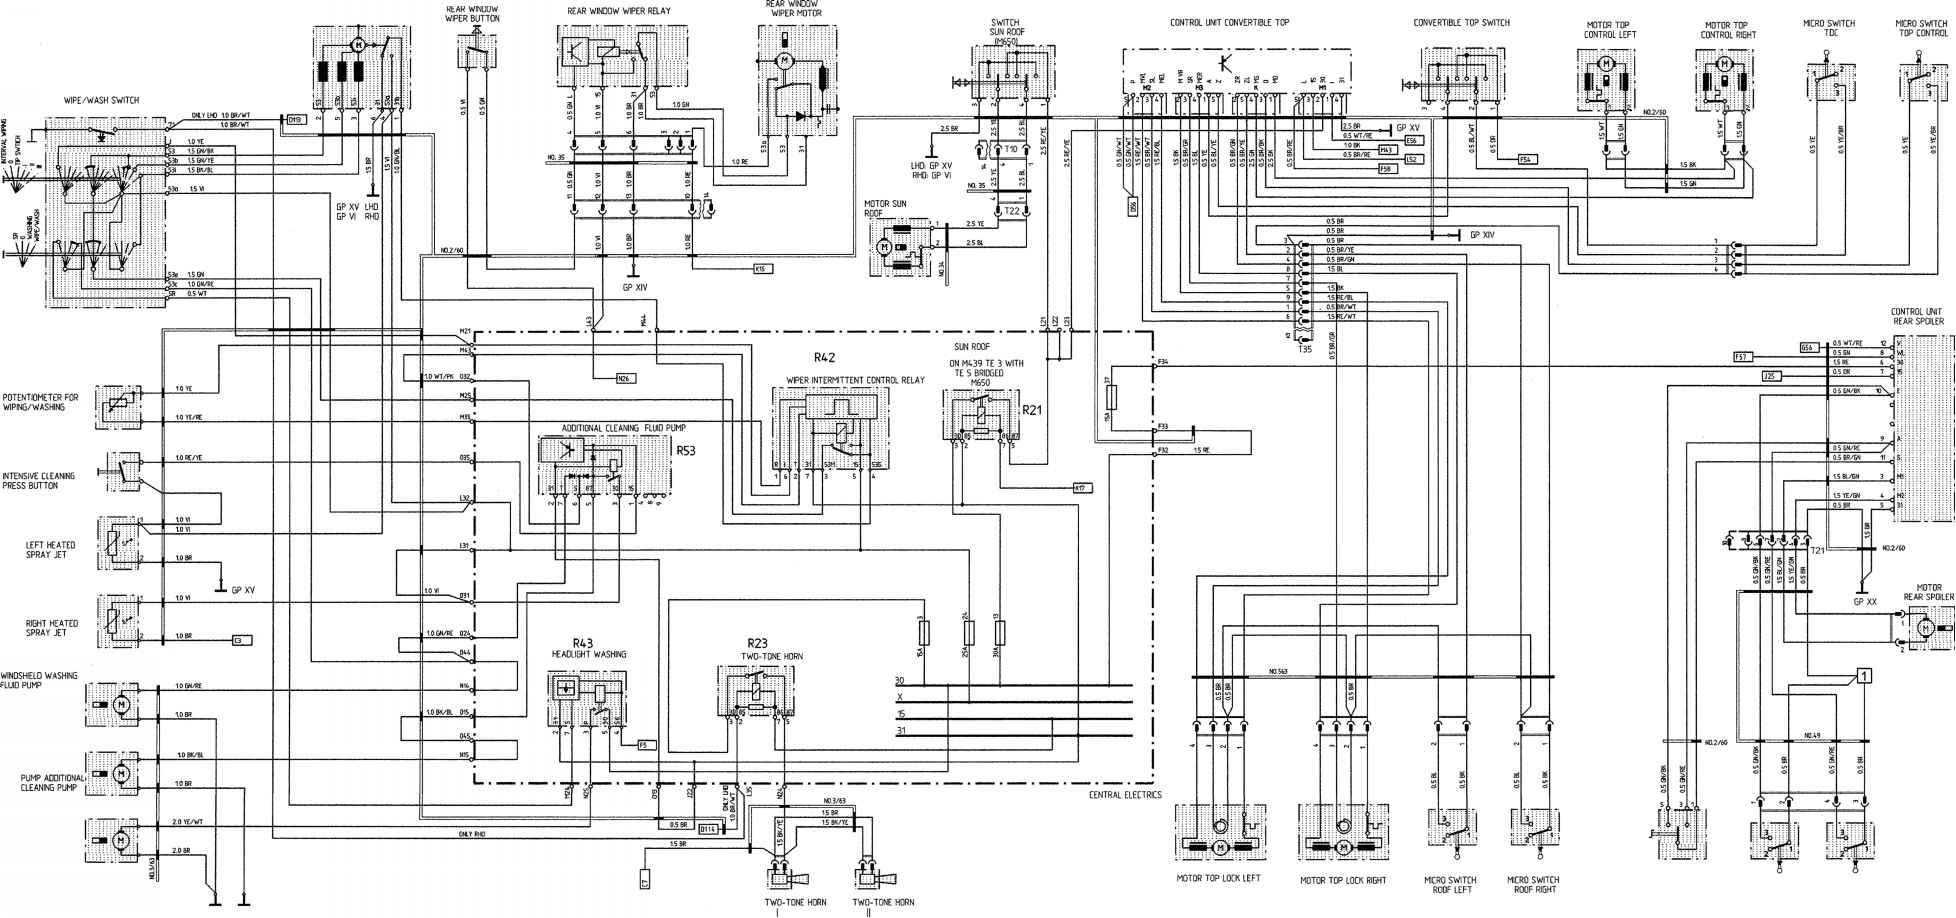 Wiring Diagram For 1996 Club Car 48 Volt likewise Chrysler Aspen 2006 2008 Fuse Box Diagram additionally 728992 Boxster Headlight Switch Wiring Diagram besides Ignition Circuit Wiring Diagram For 1956 Studebaker Passenger Cars furthermore Tv Cable Adjustments. on electrical wiring diagrams for cars